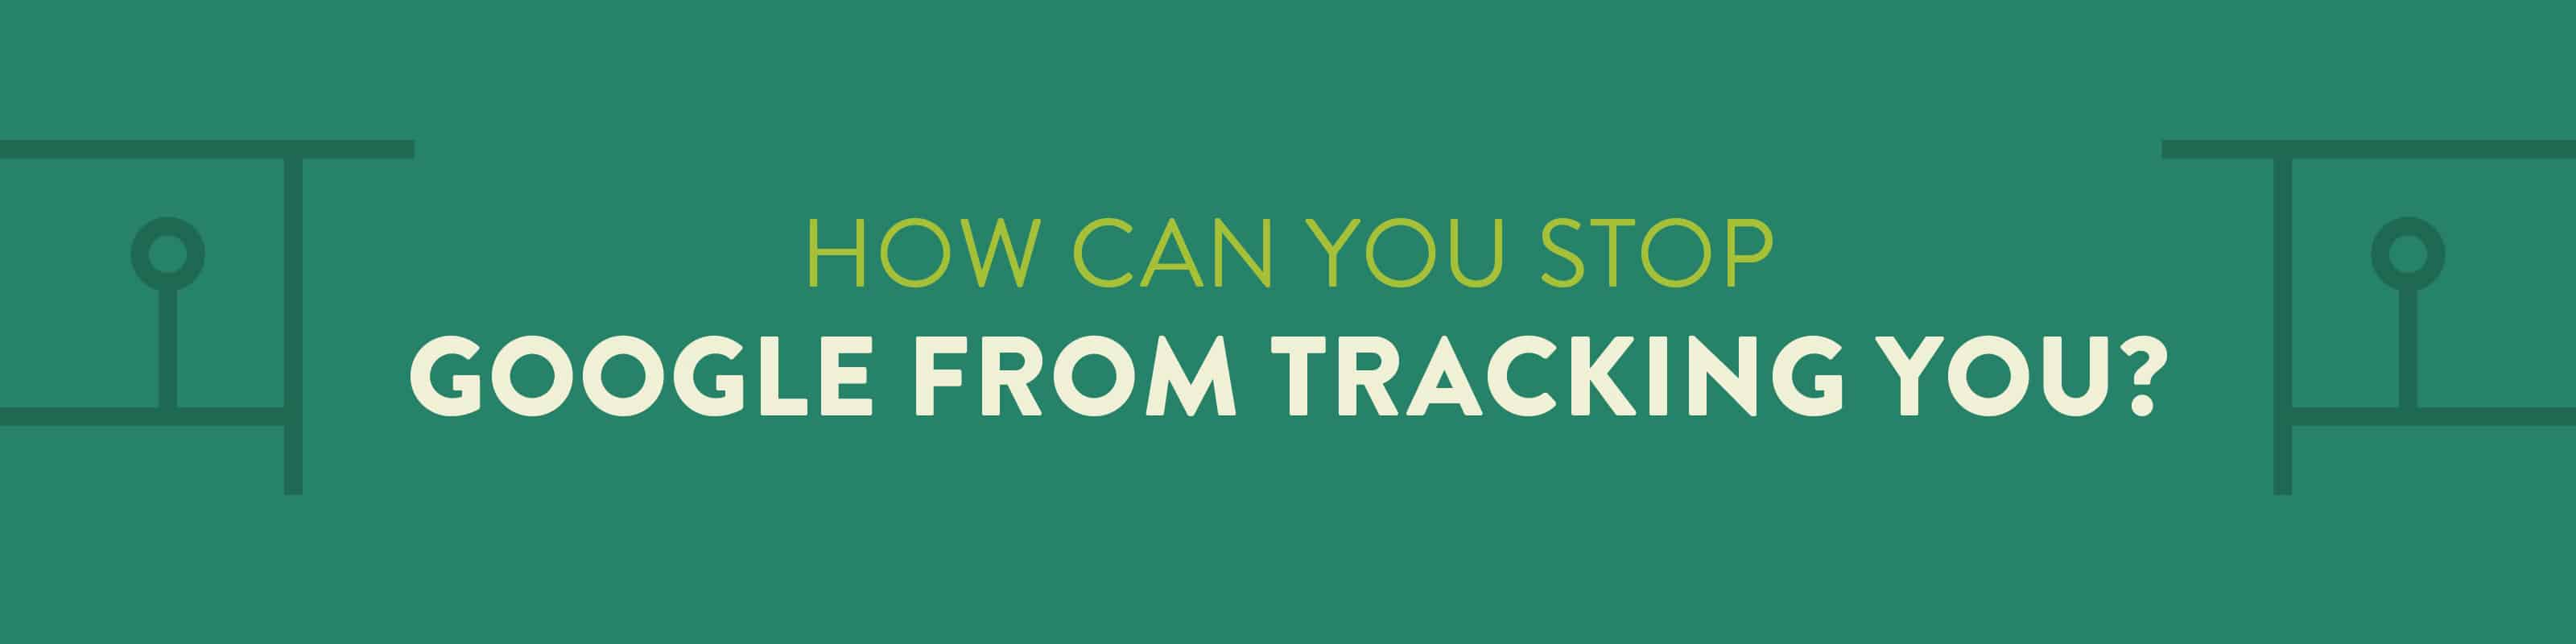 how can you stop Google from tracking you